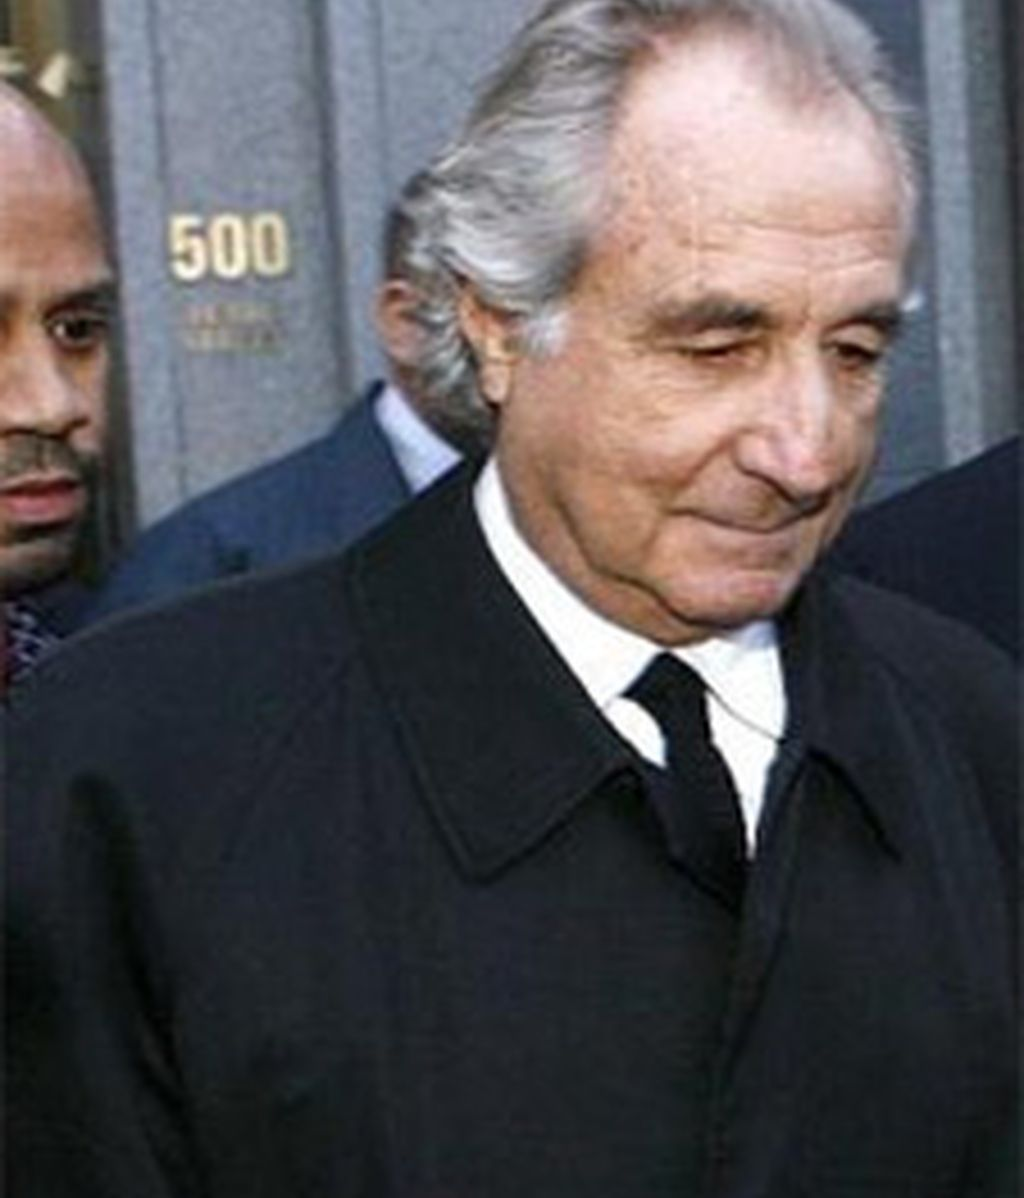 Bernard Madoff ha vuelto a pedir perdón. Video: ATLAS.